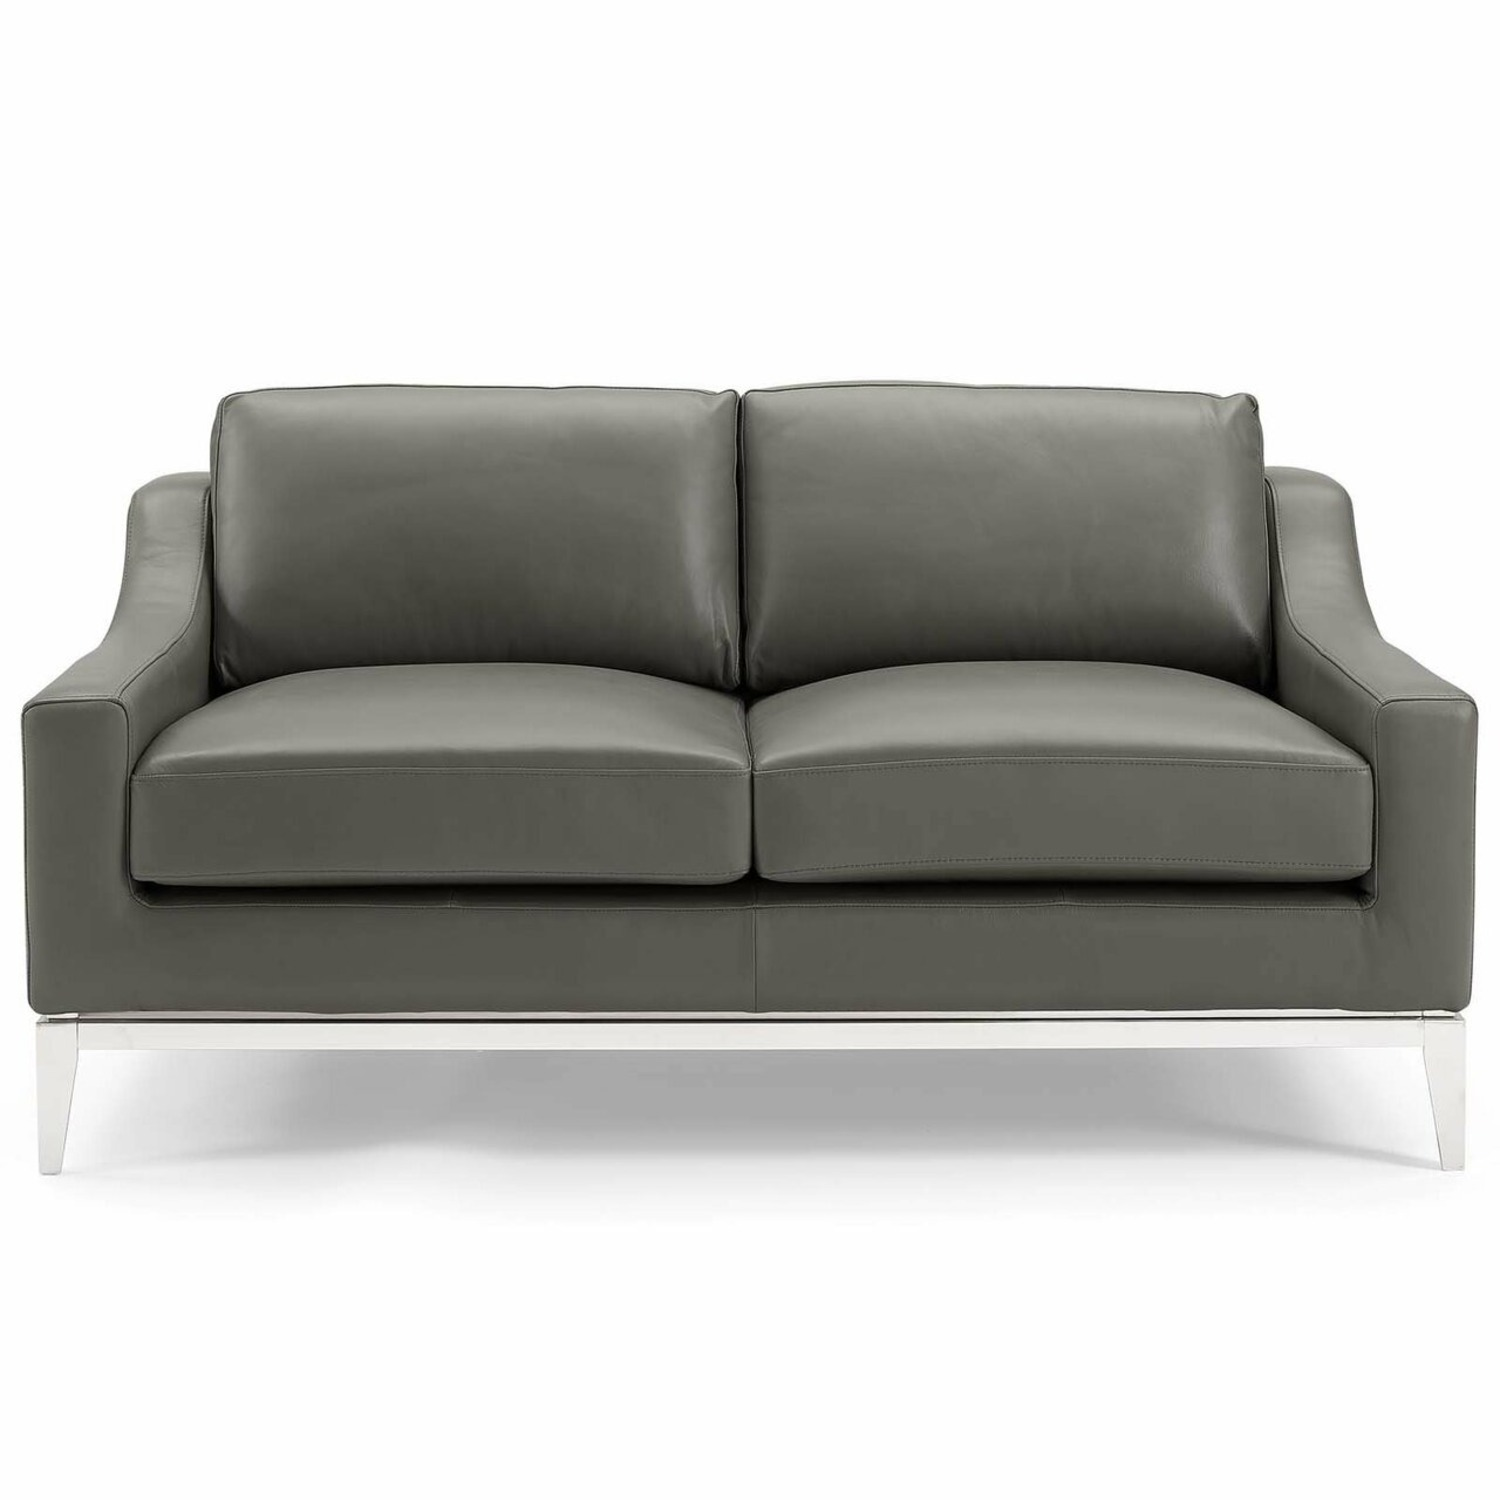 Loveseat In Gray Leather W/ Stainless Steel Base - image-0